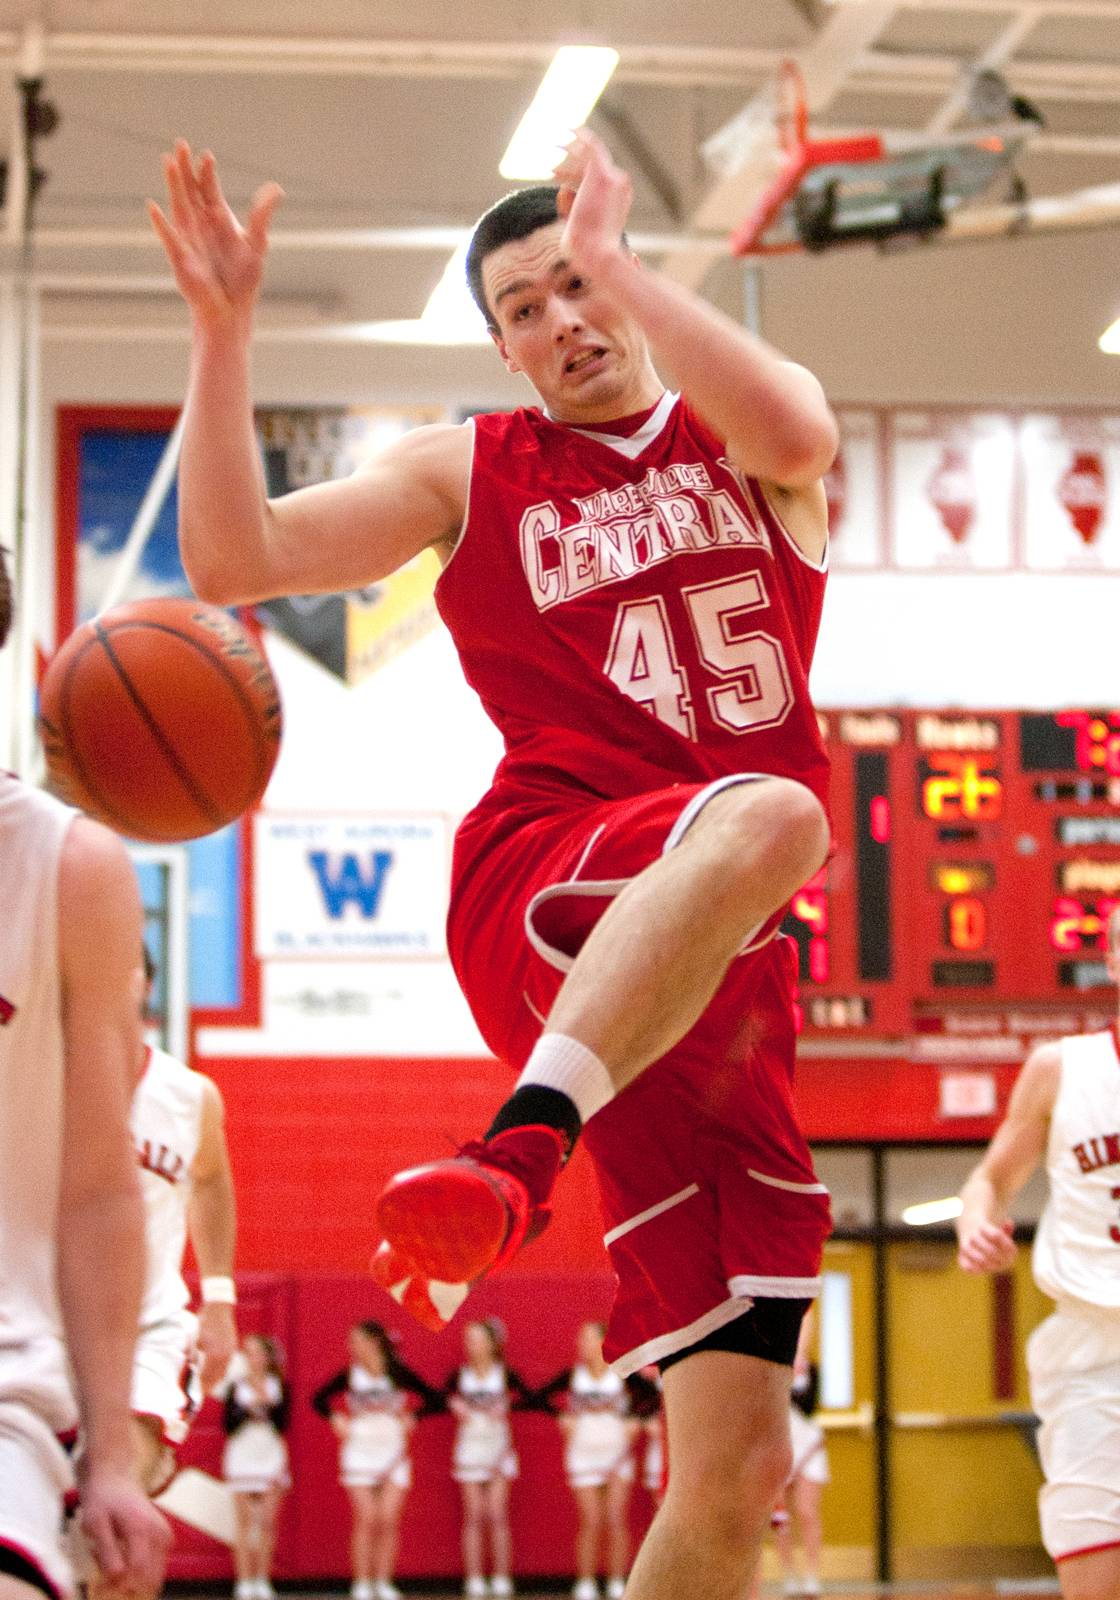 Naperville Central's Nick Czarnowski drives the lane against Hinsdale Central.